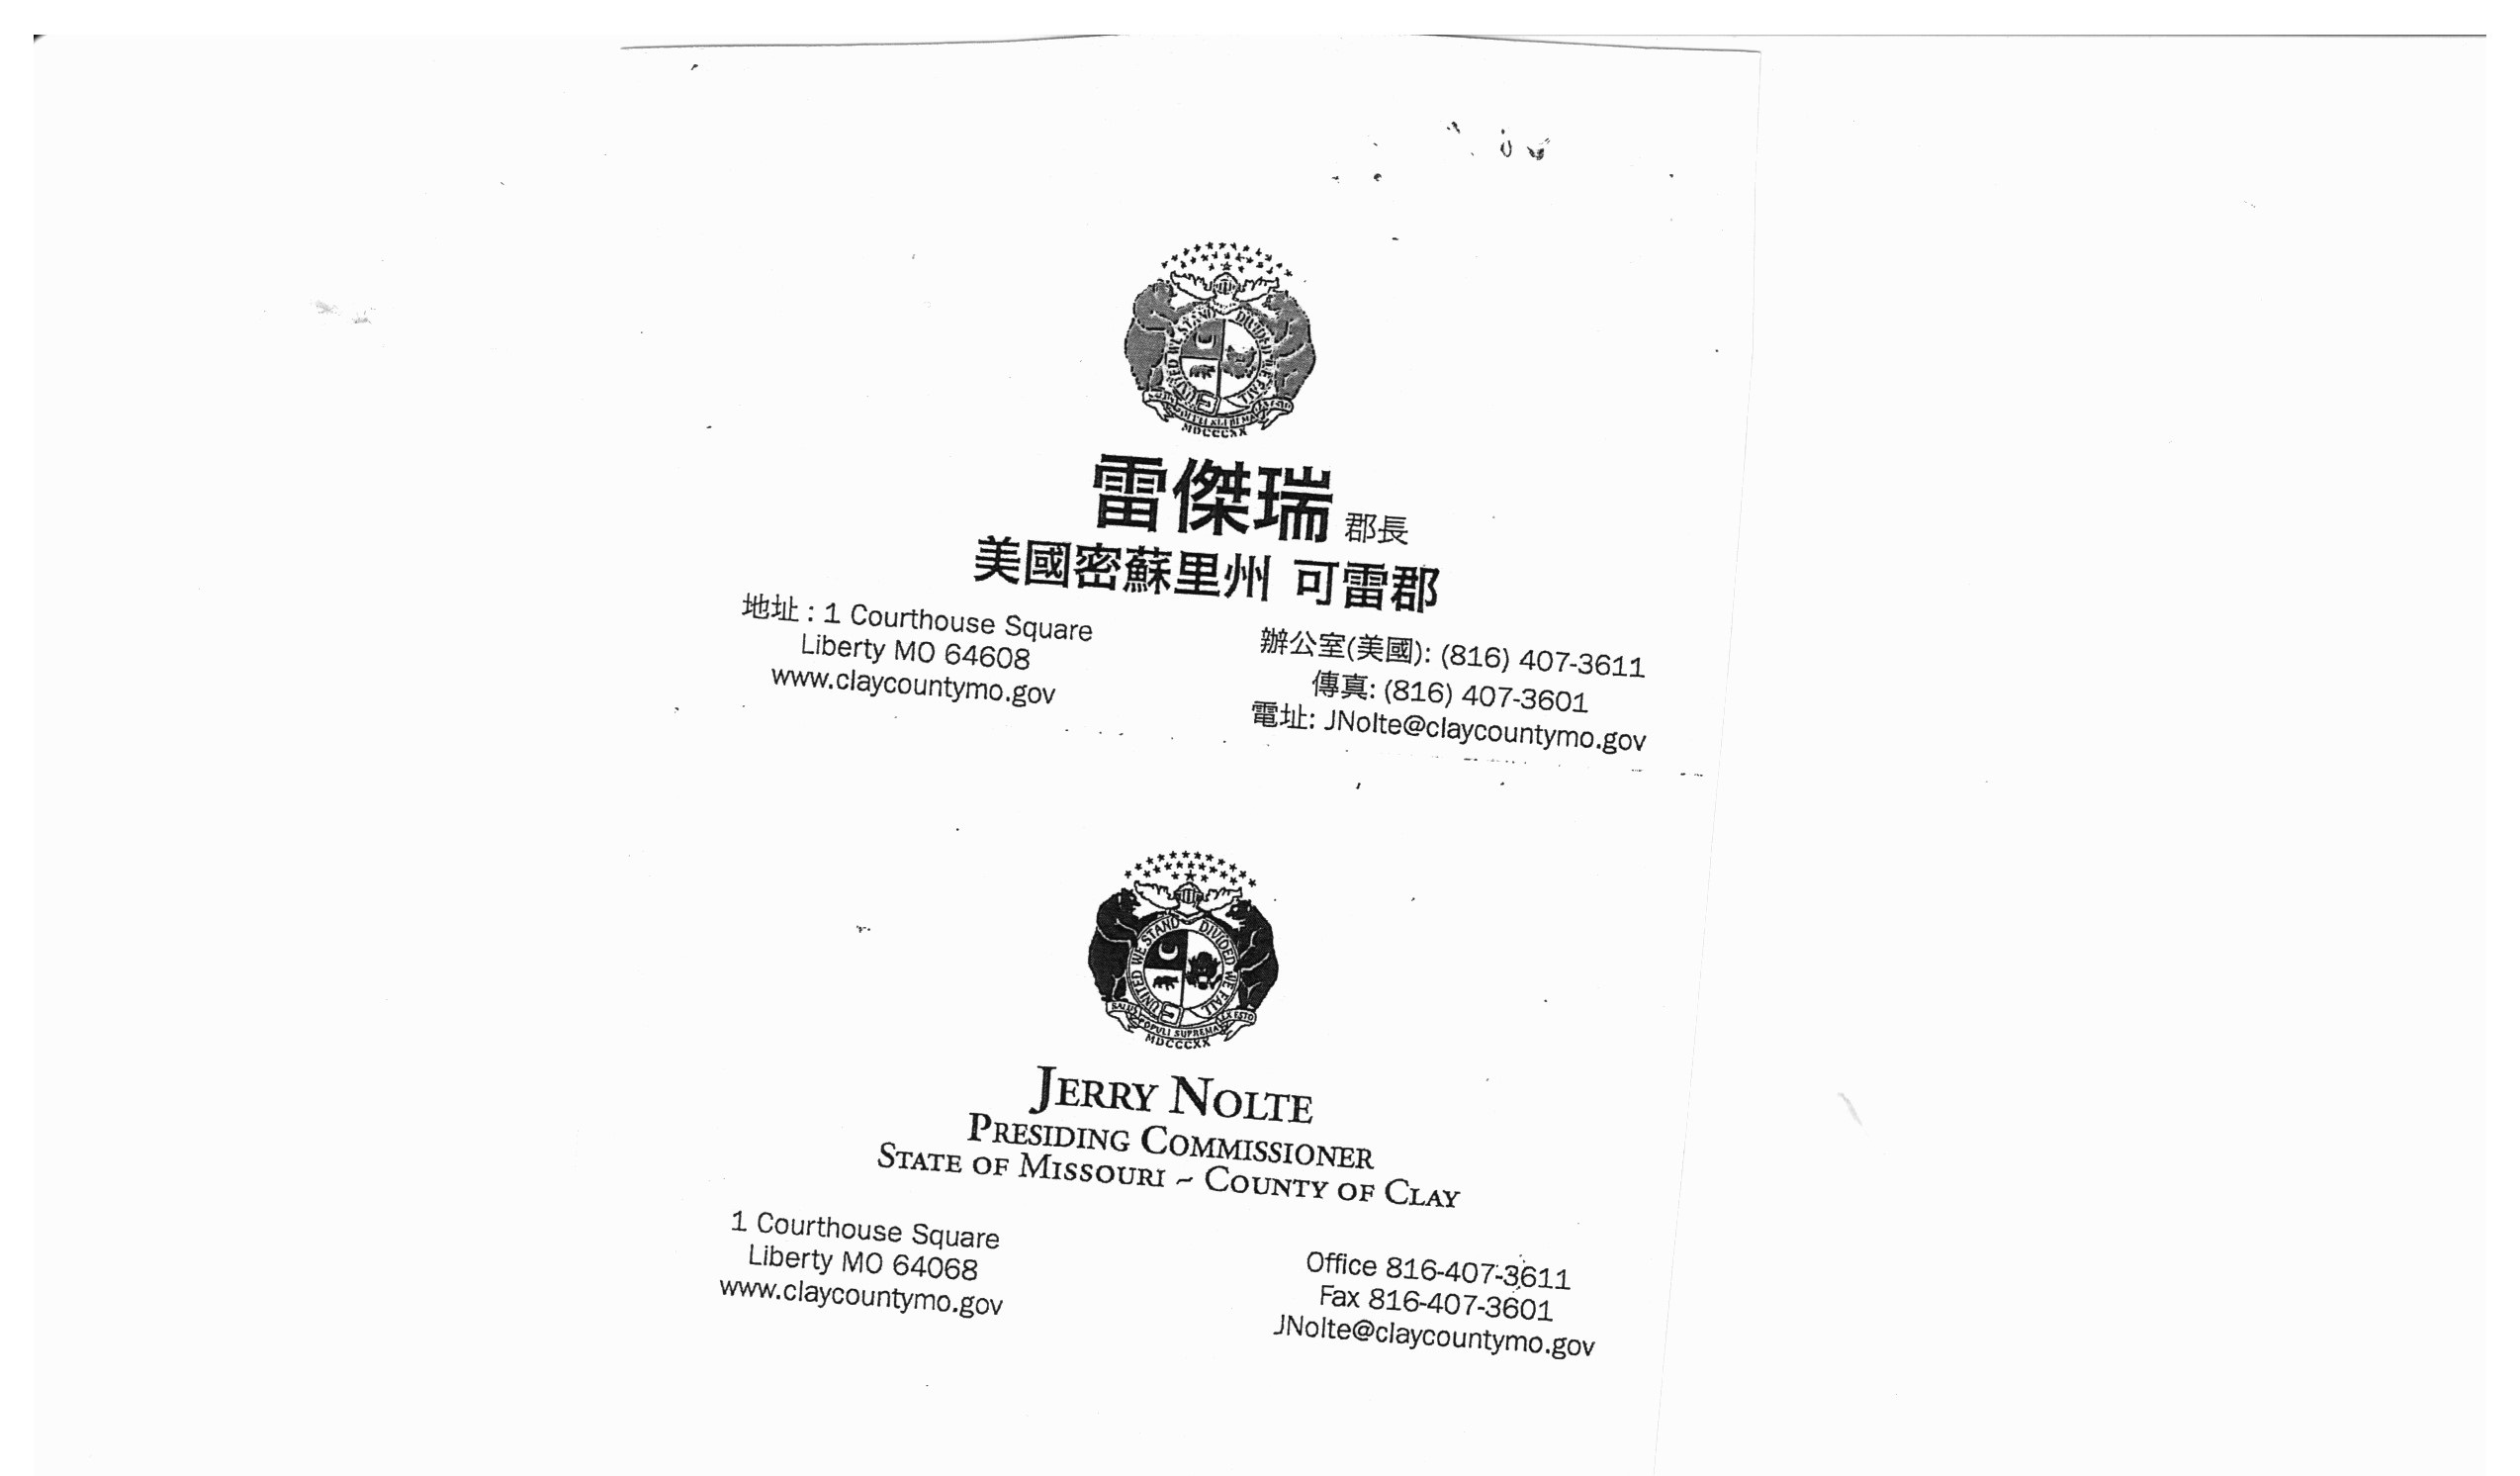 Commissioner Jerry Nolte Statement on Chinese Business Card - The ...